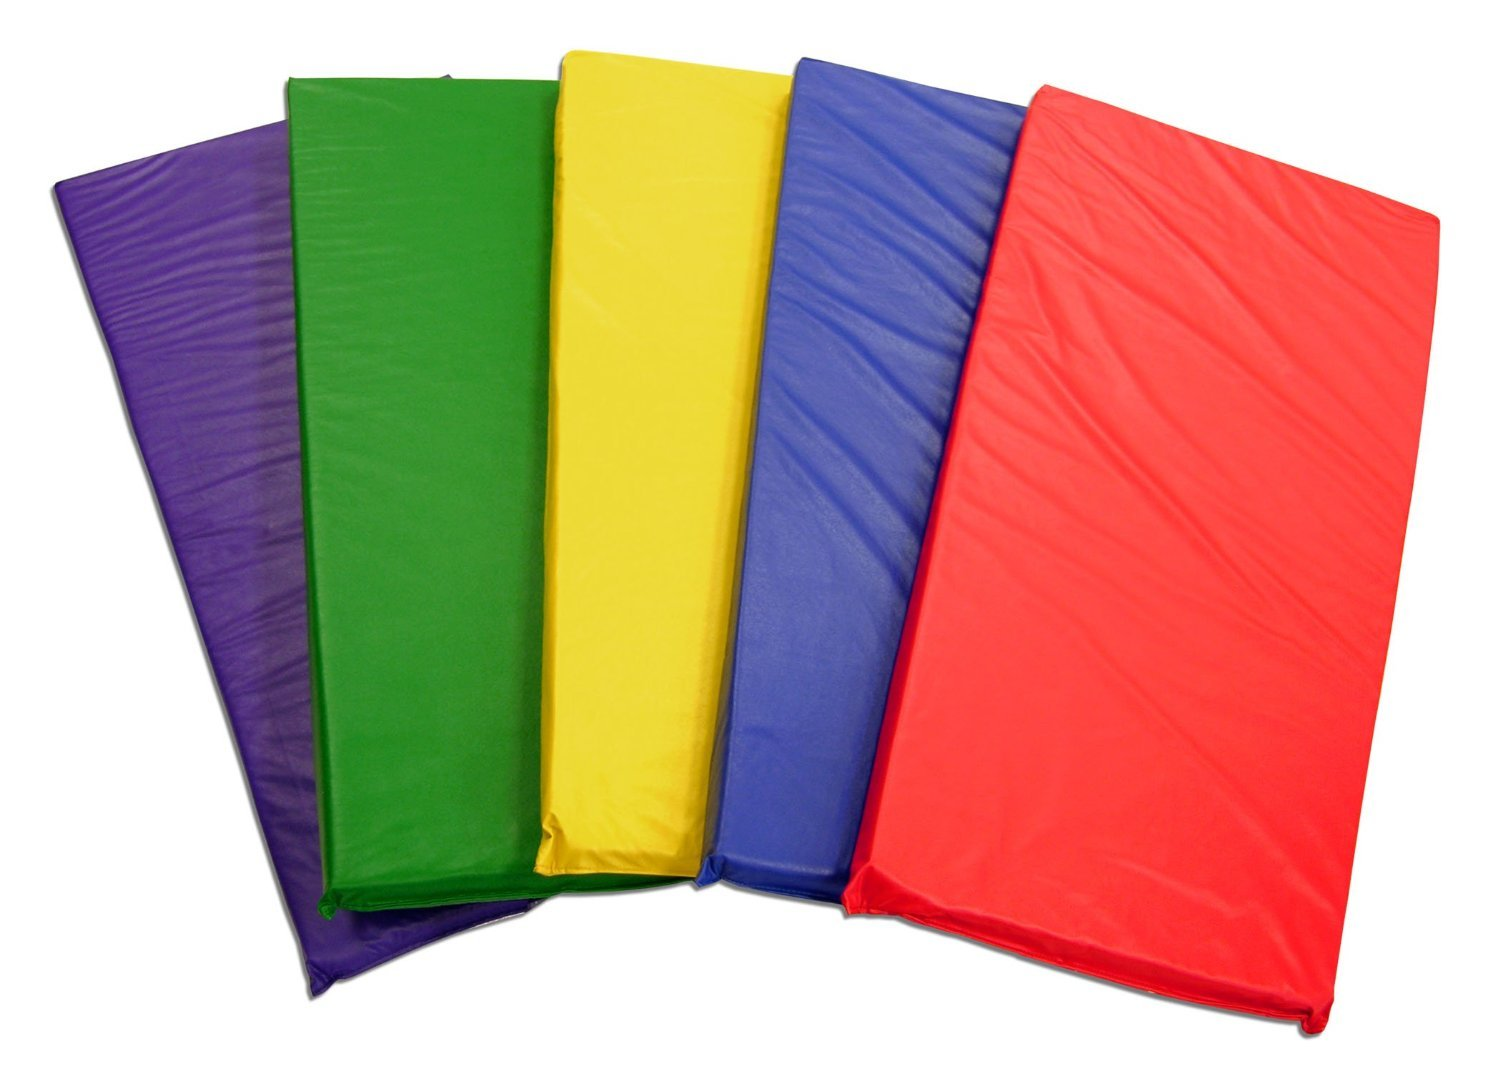 (5-Pack) KinderMats Rainbow Designer Nap Mats by KinderMat